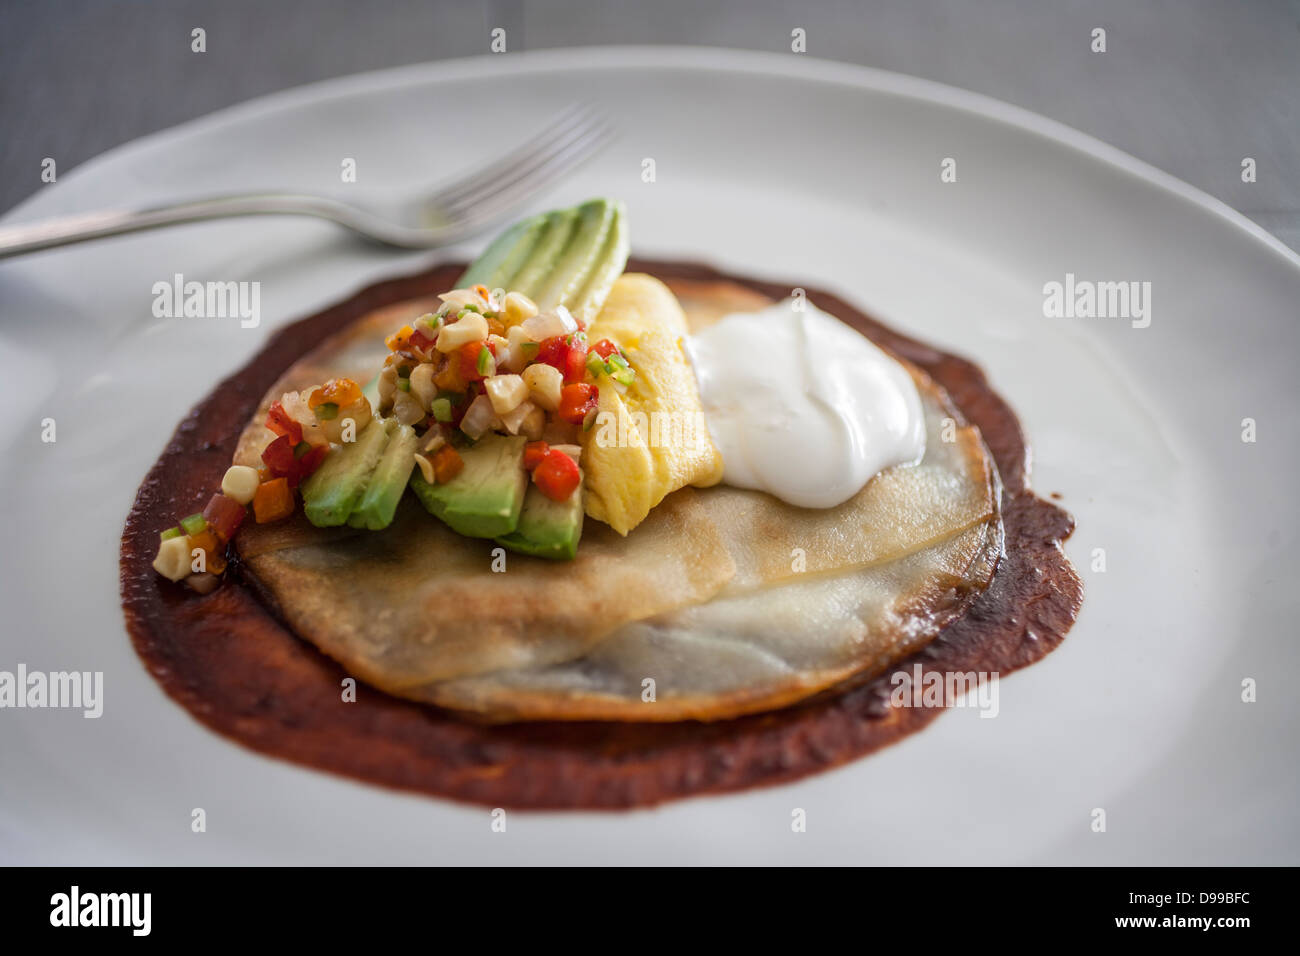 huevos rancheros with fresh cut avocado and sourcream - Stock Image